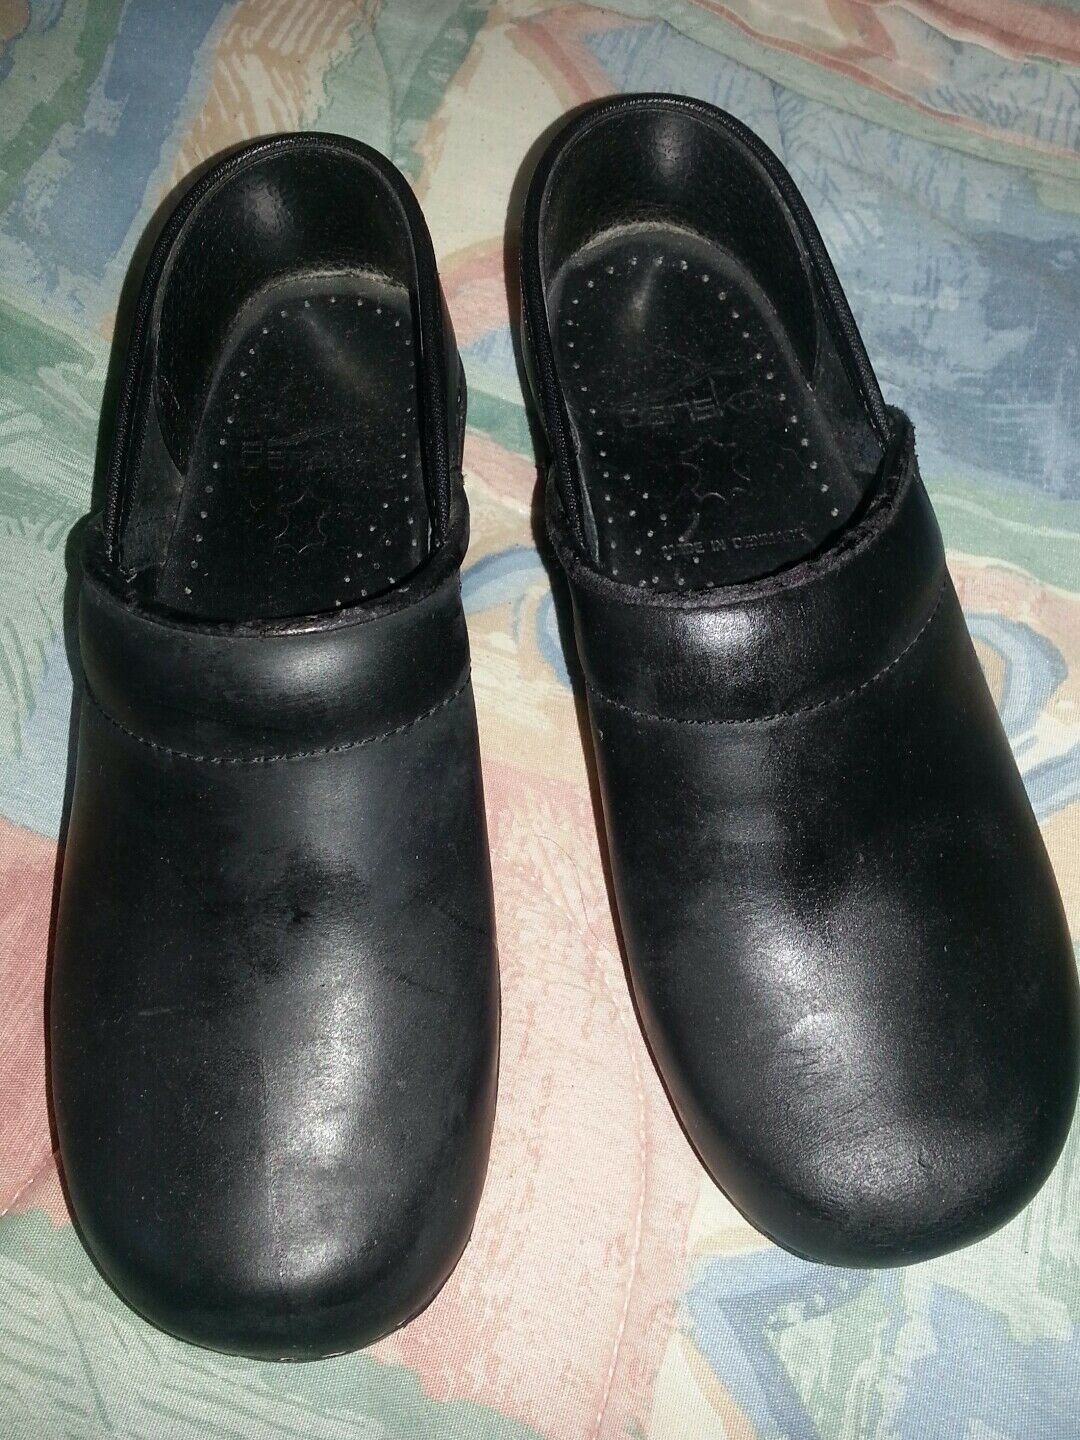 DANSKO PROFESSIONAL CLOGS Cabrio Black. Leather 36 Size 6